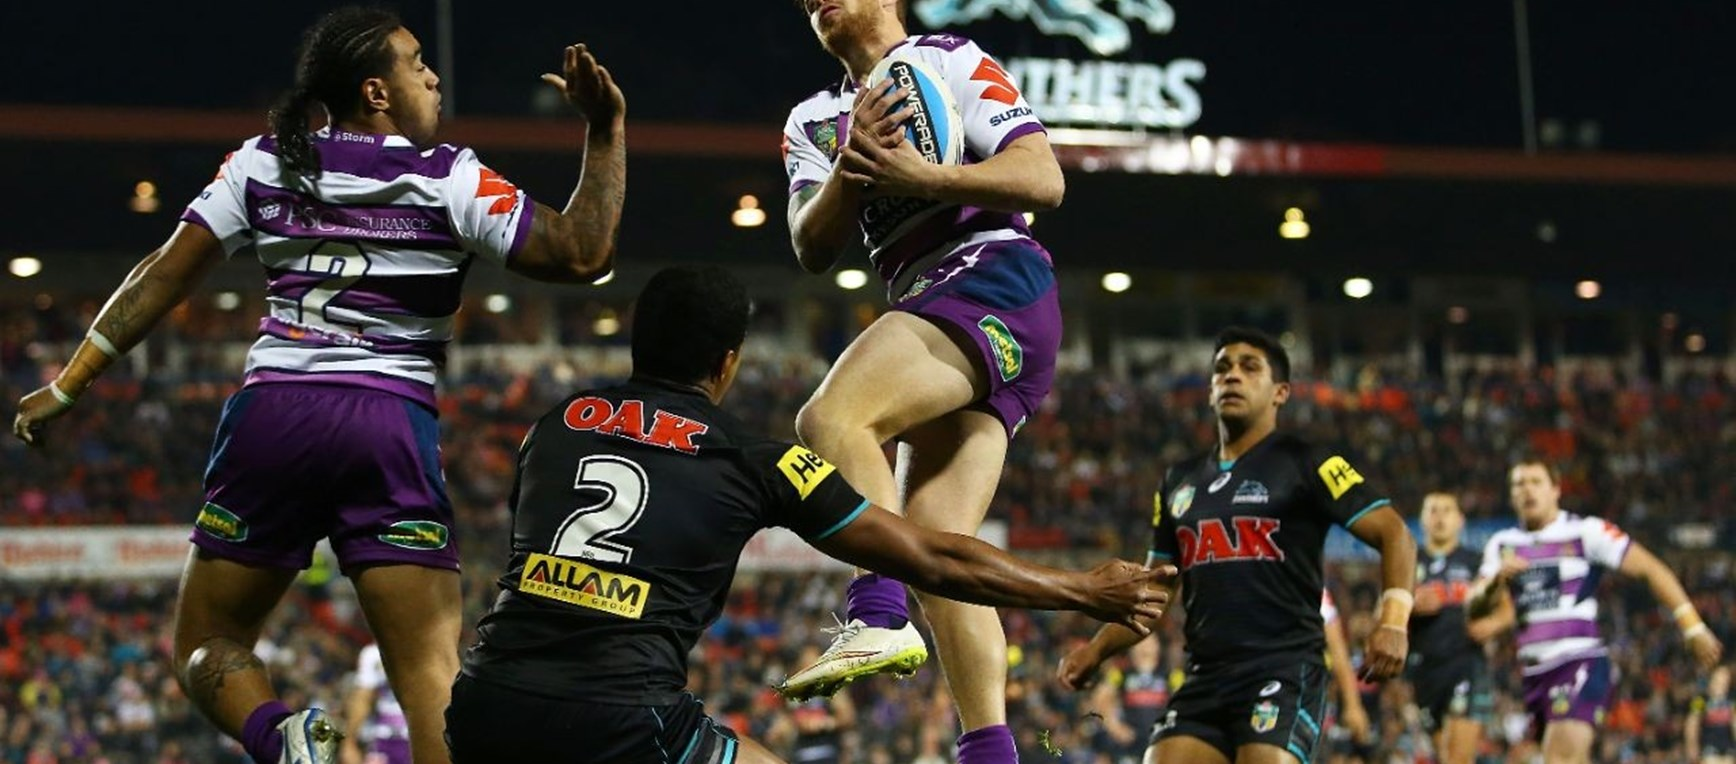 In Pictures: Panthers v Storm